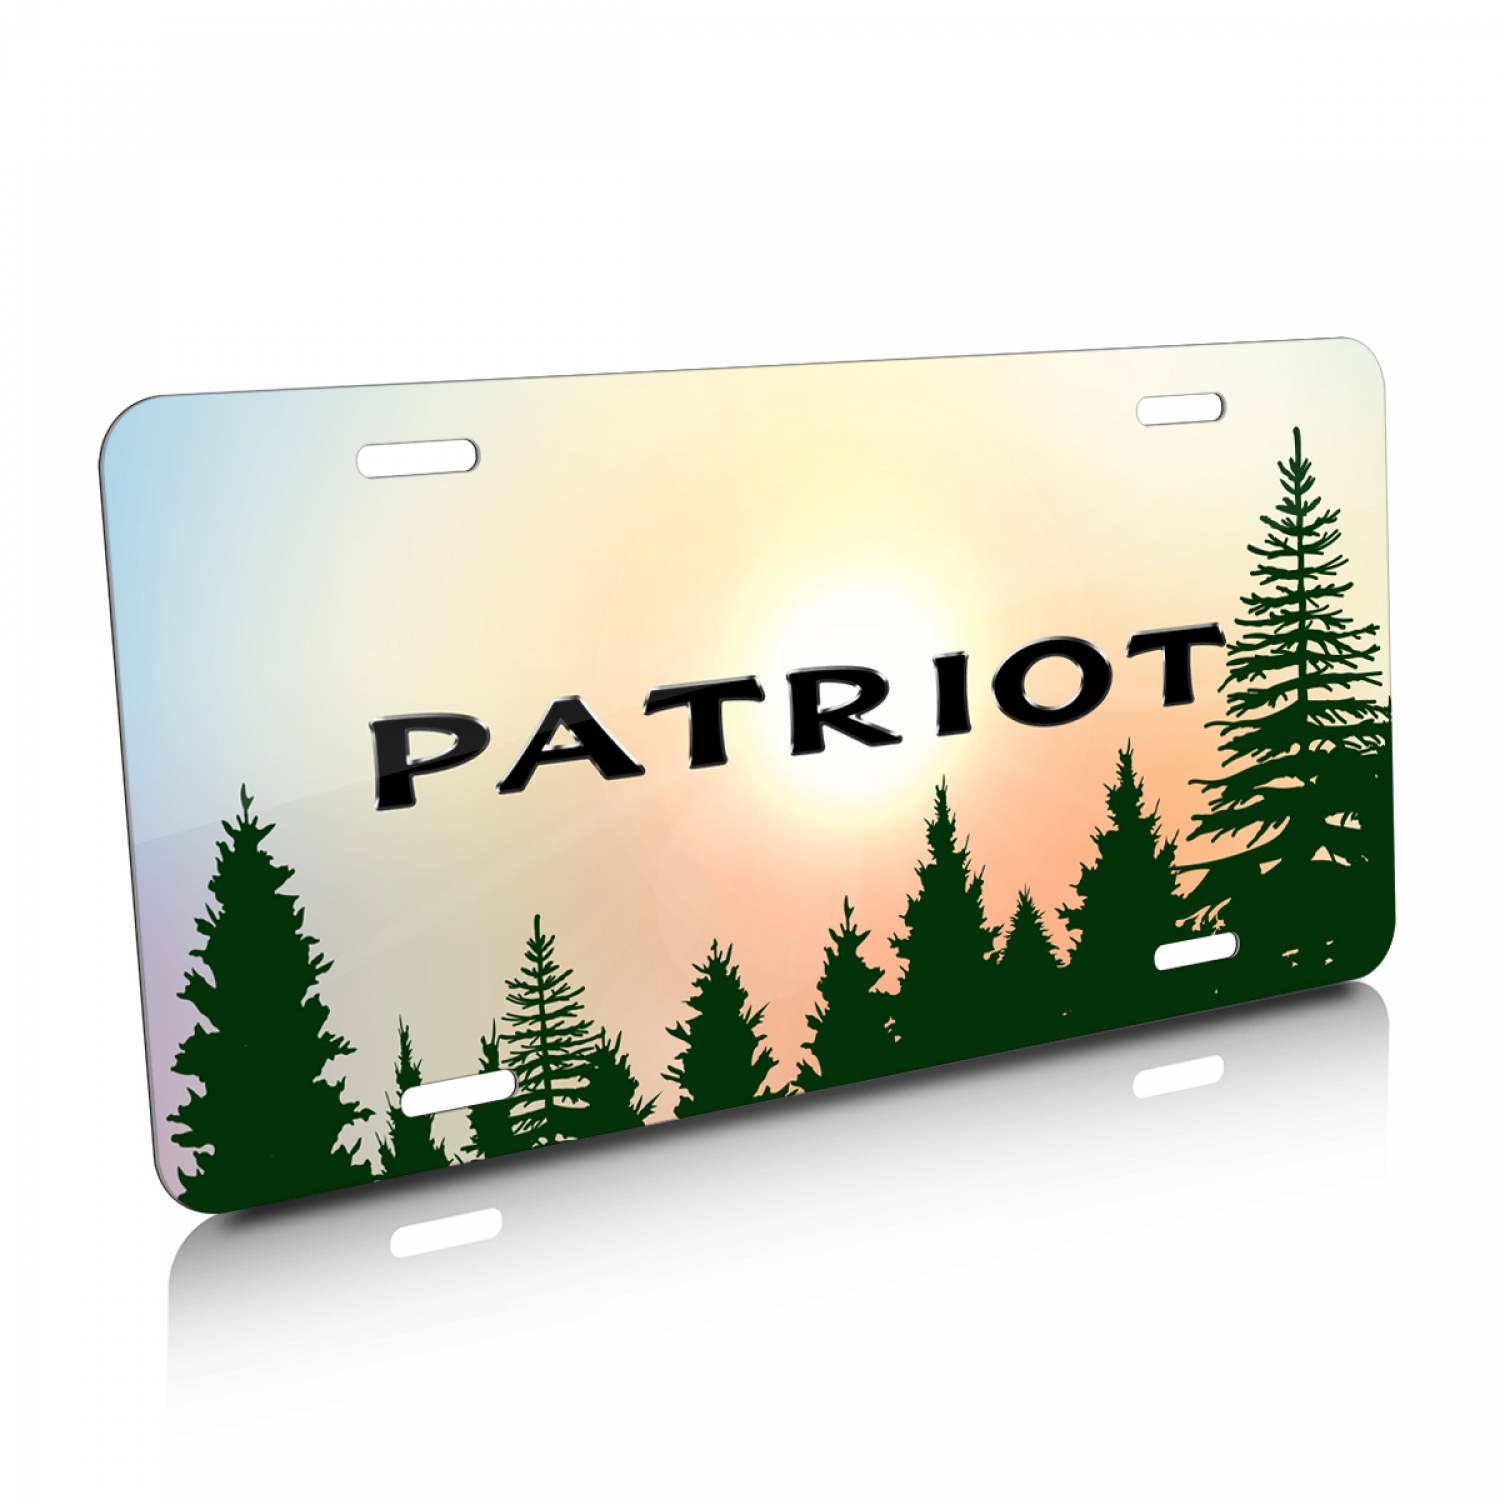 Jeep Patriot Green Forrest Sillhouette Graphic Aluminum License Plate